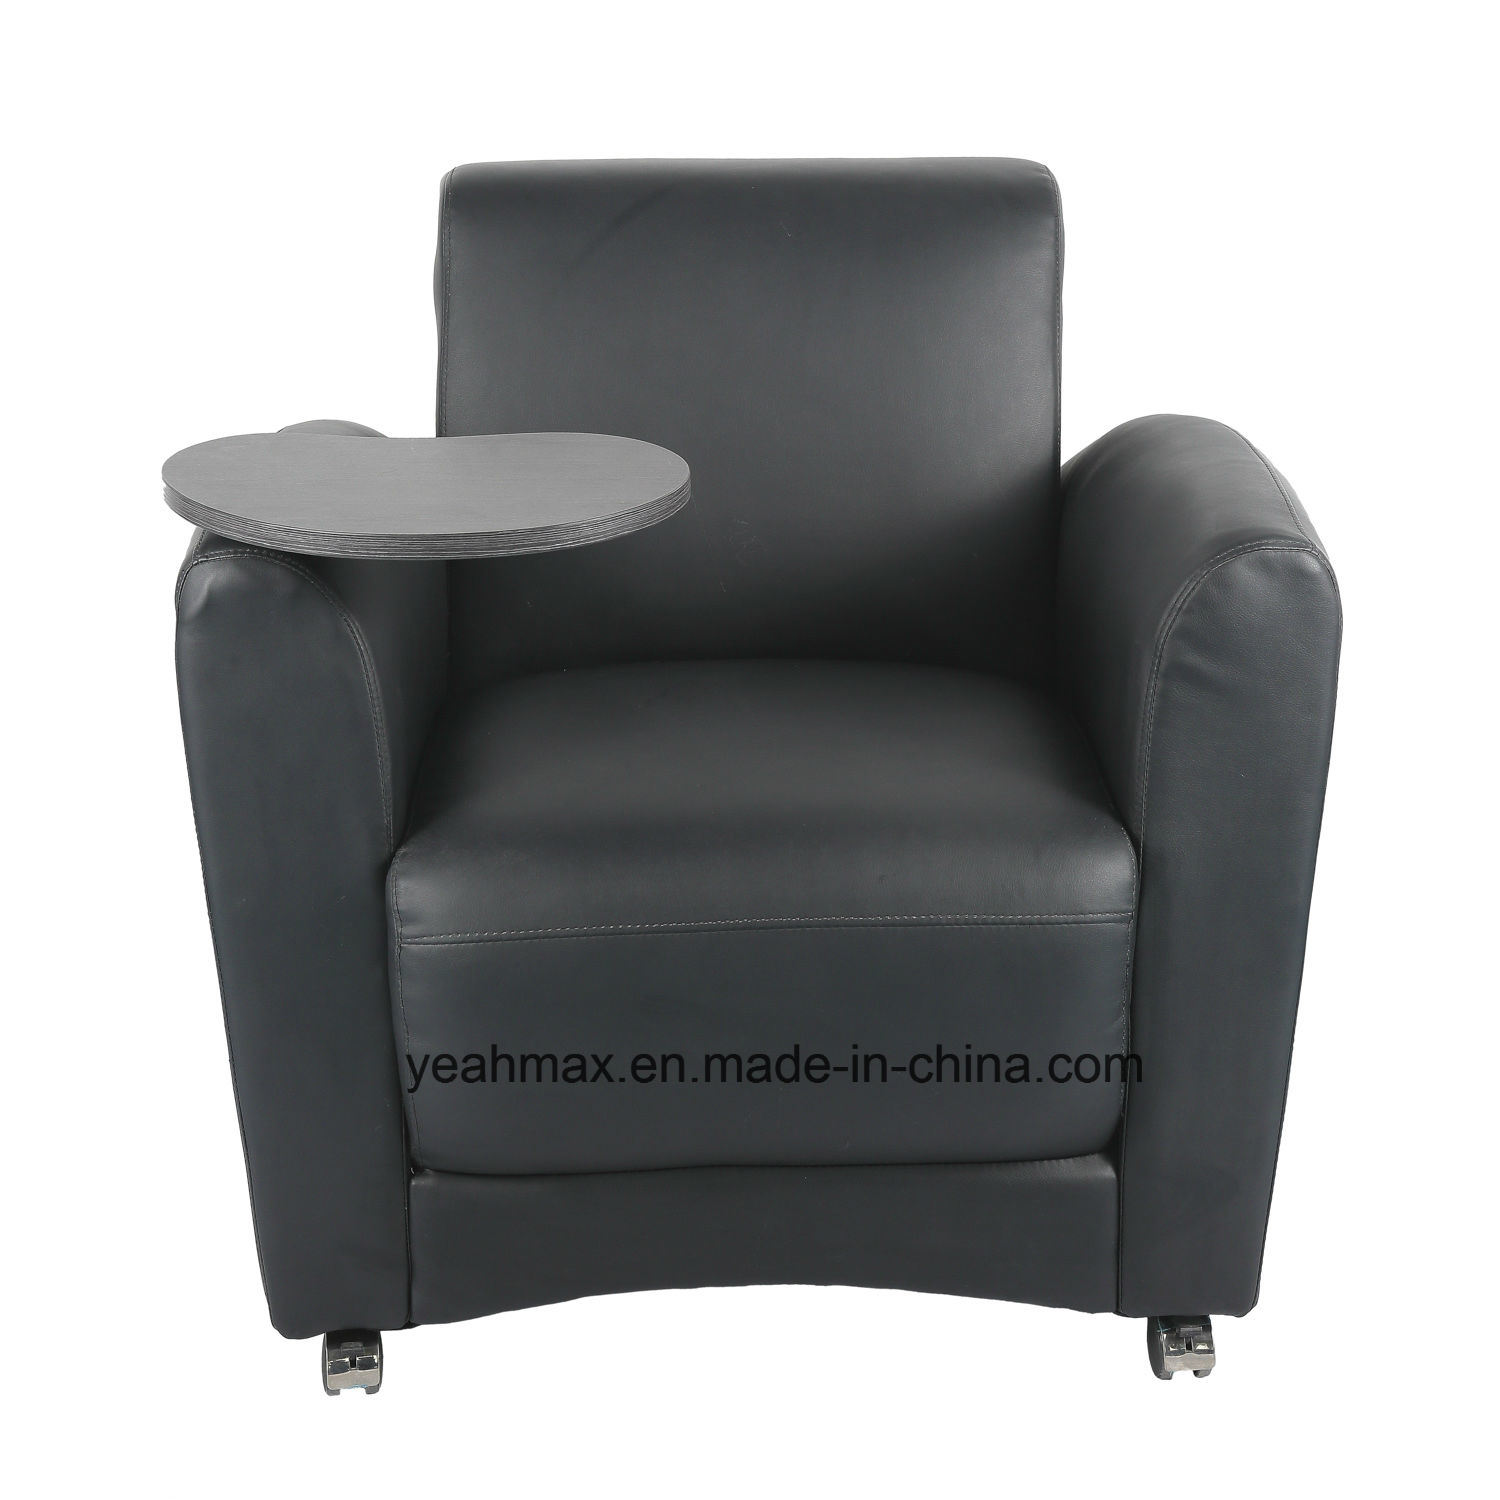 China modern office receiption chair with tablet armrests china furniture office furniture